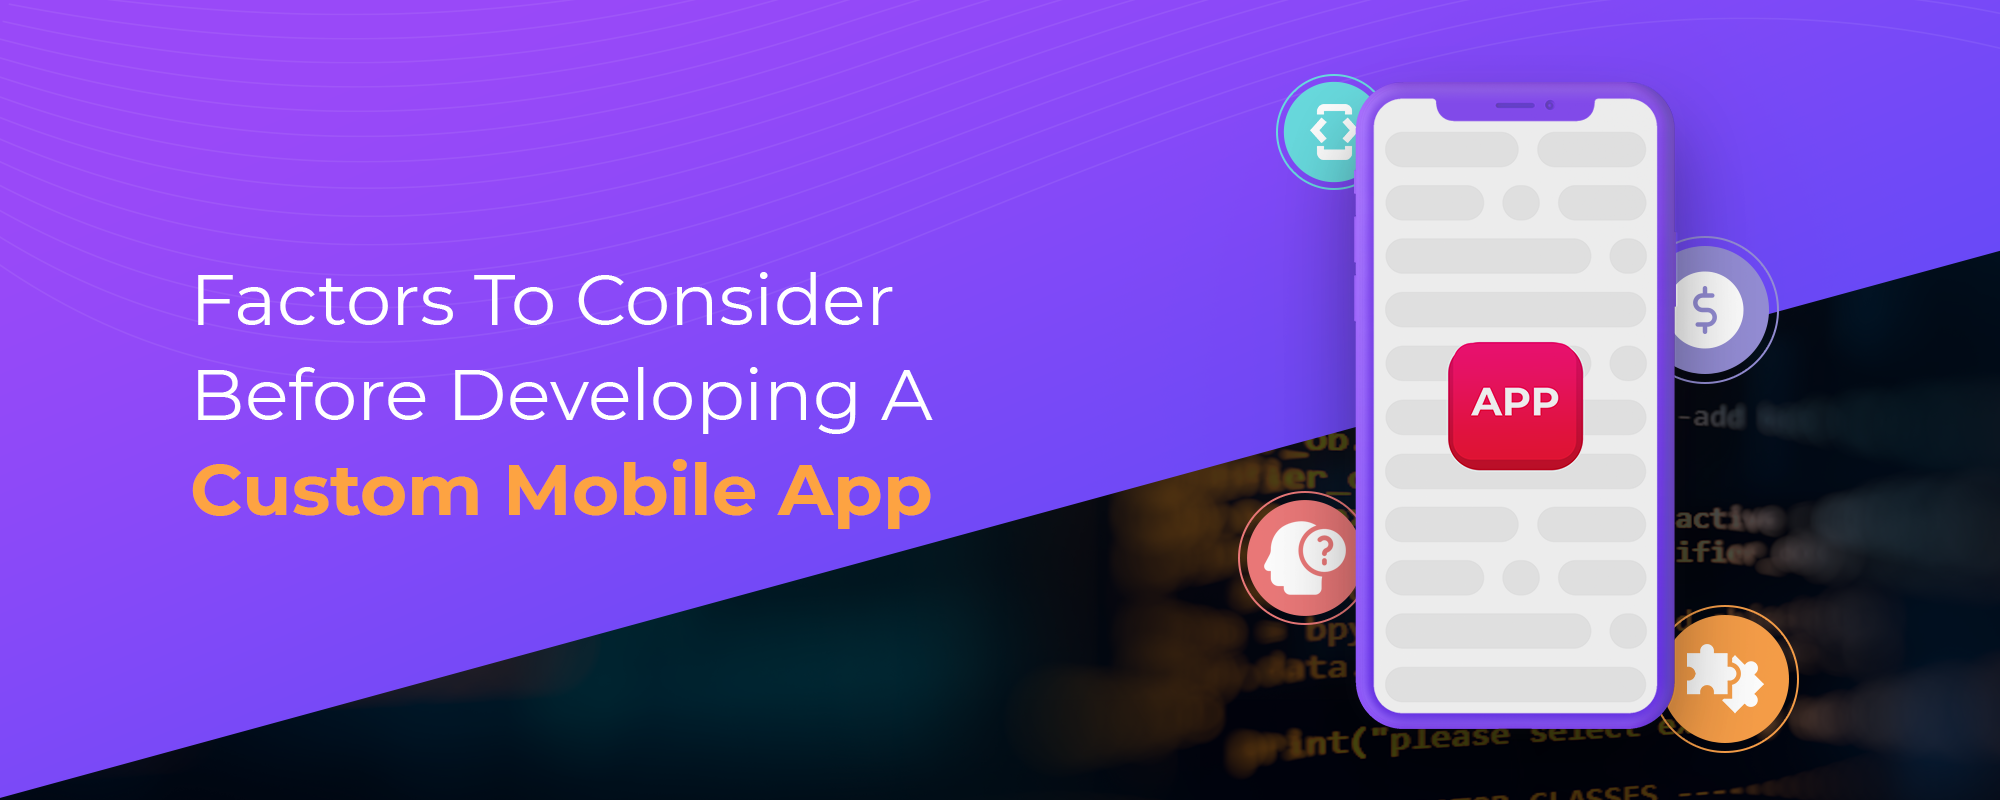 5 Factors To Consider Before Developing a Custom Mobile App for Your Business